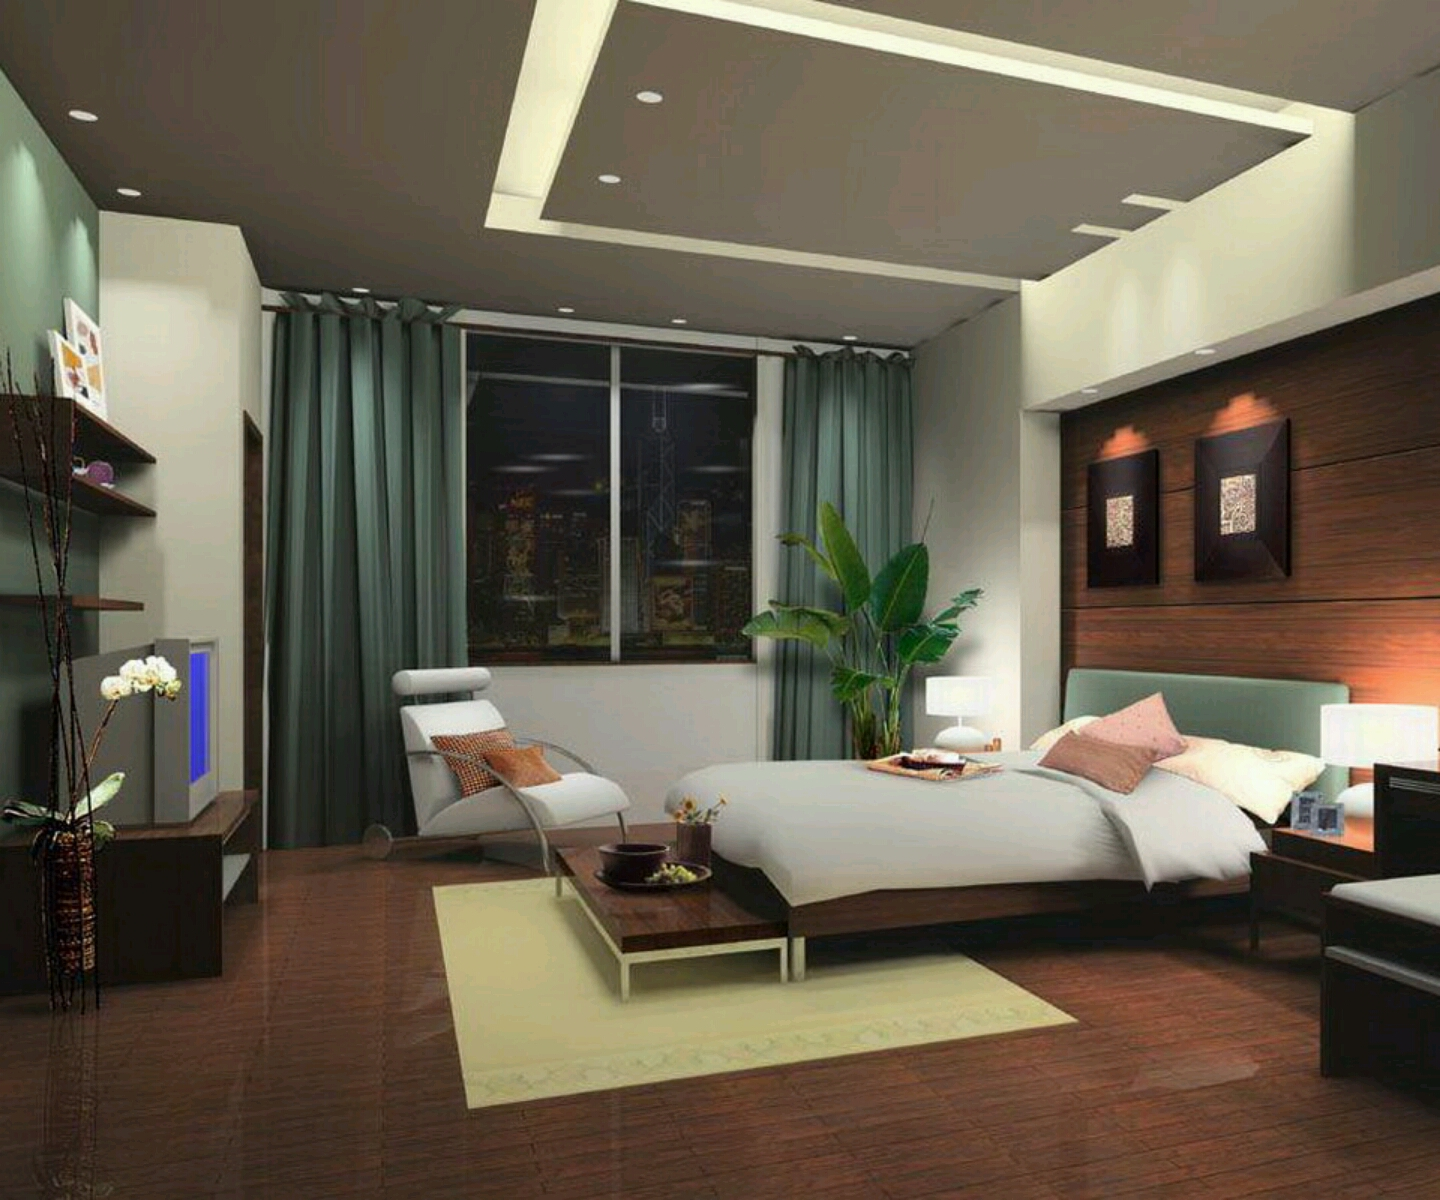 New home designs latest modern bedrooms designs best ideas for Bedroom layout